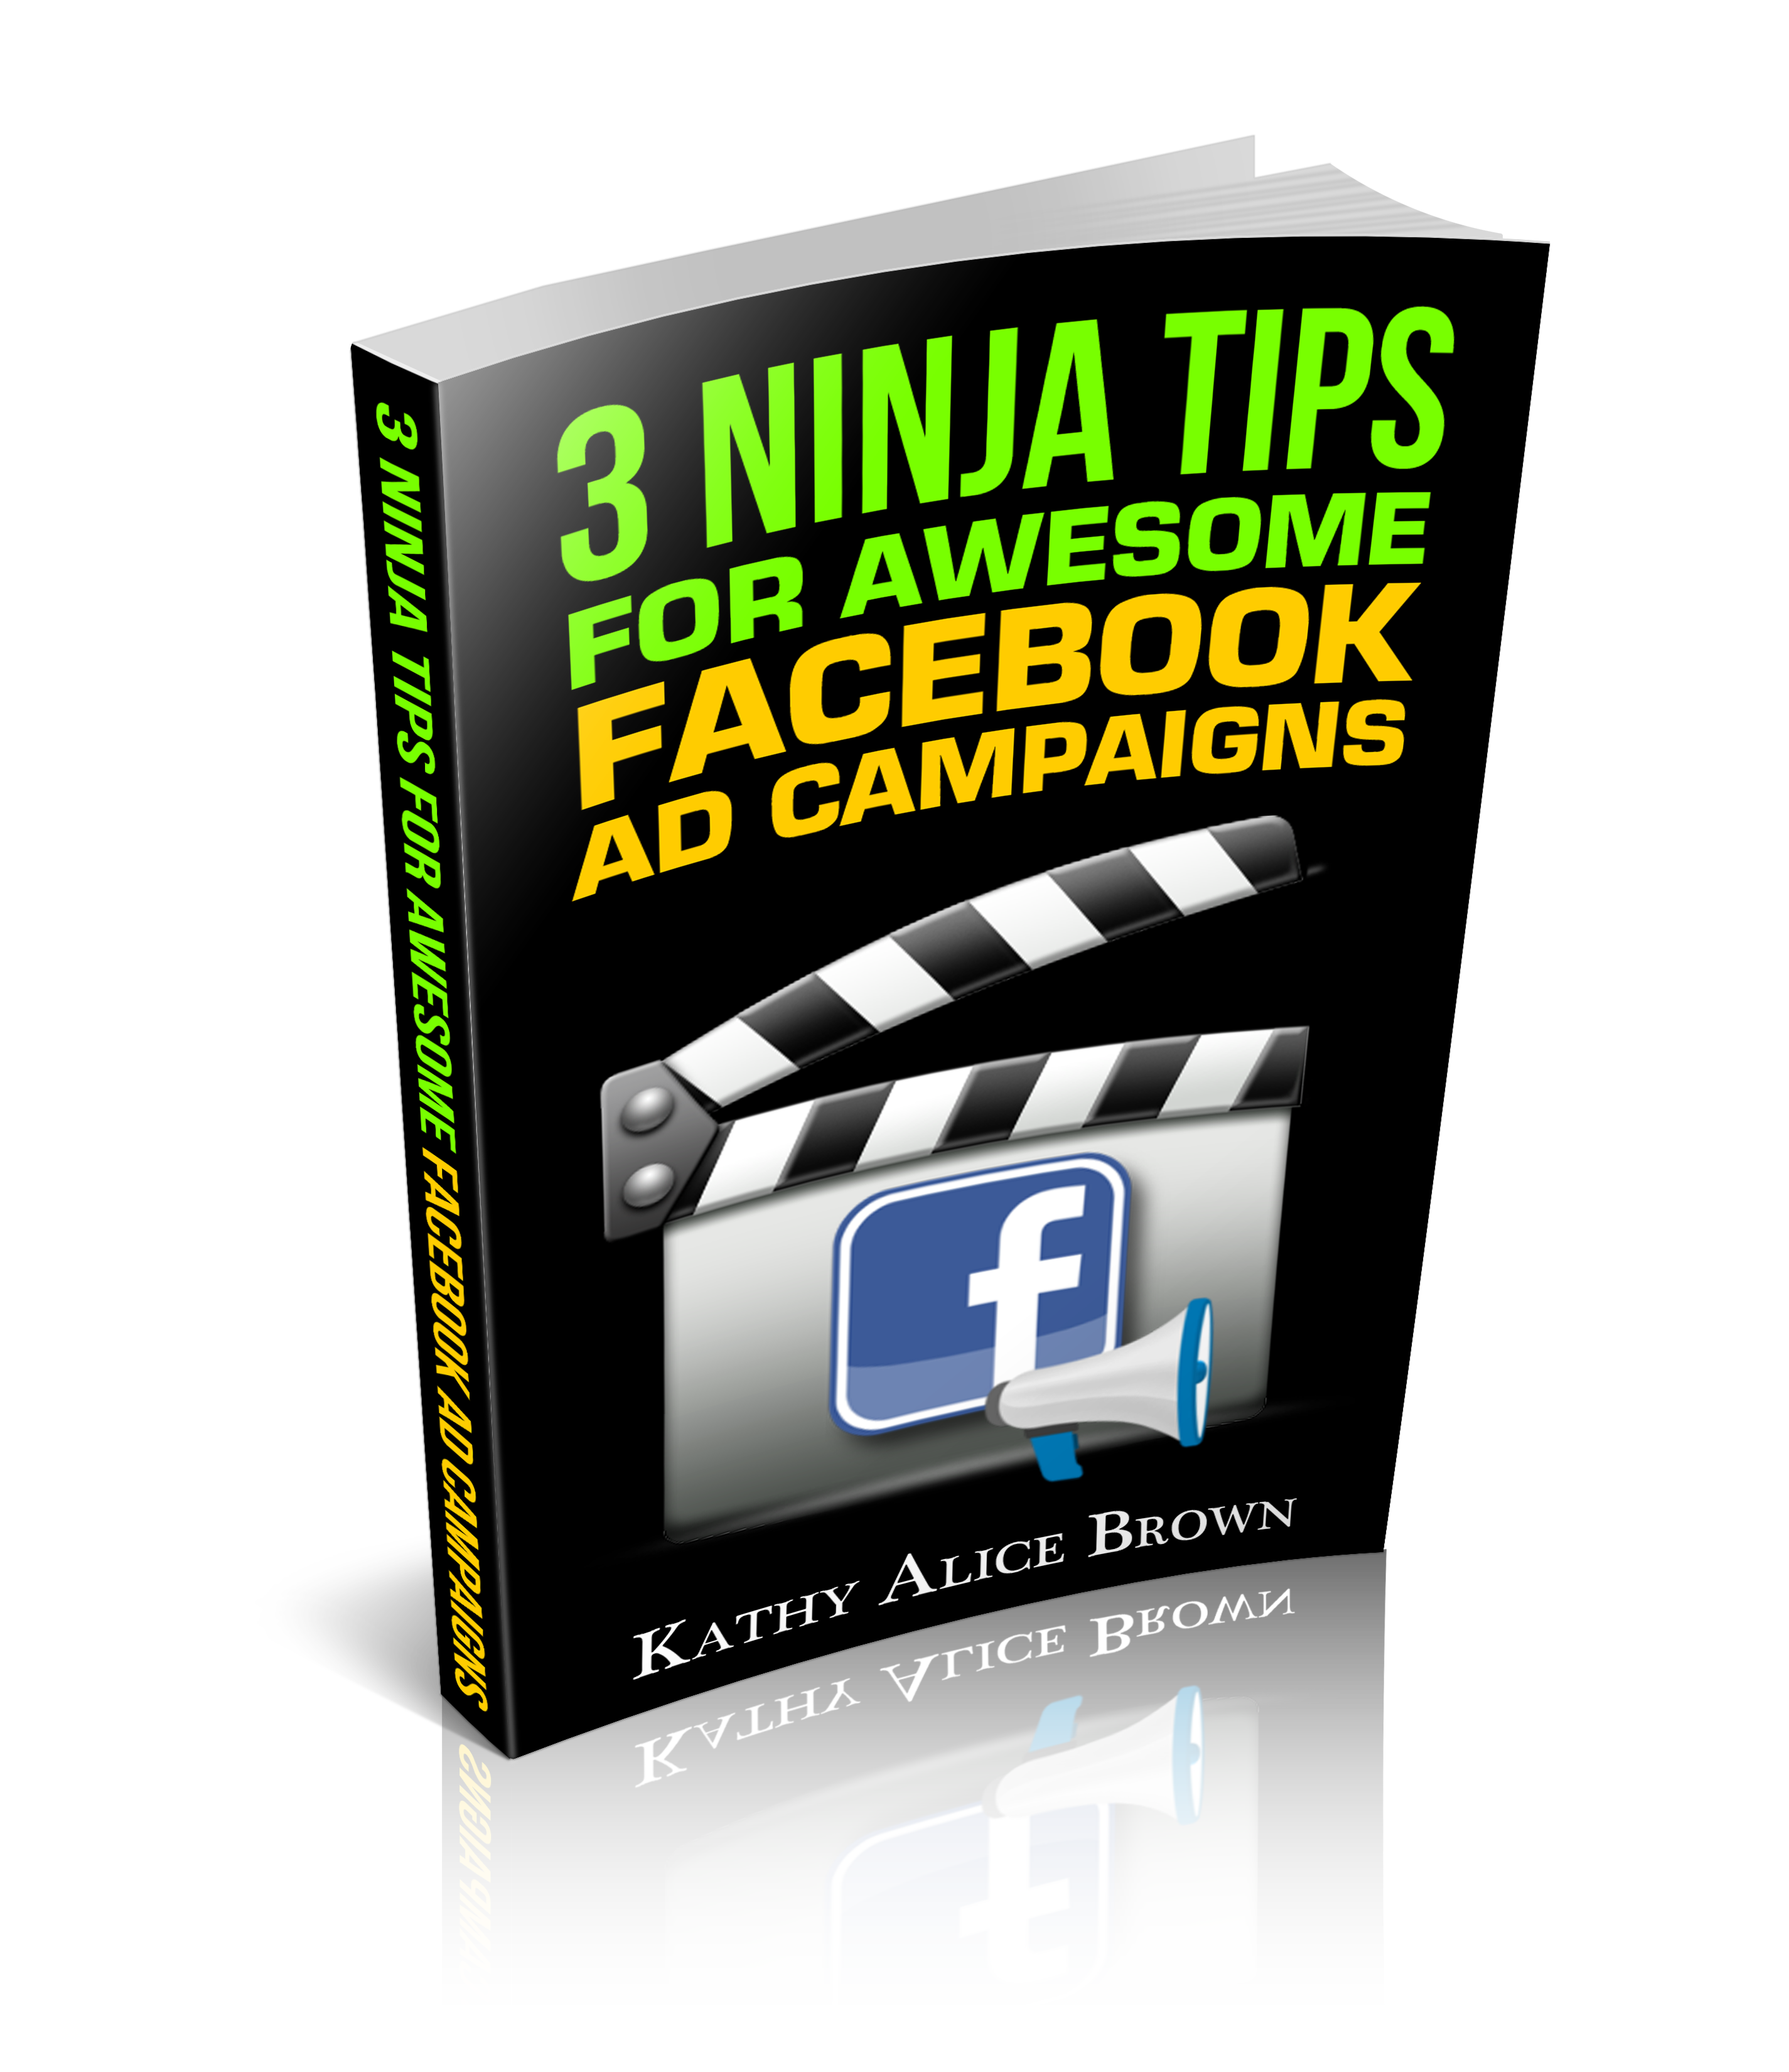 3 Ninja Tips for Awesome Facebook Ad Campaigns